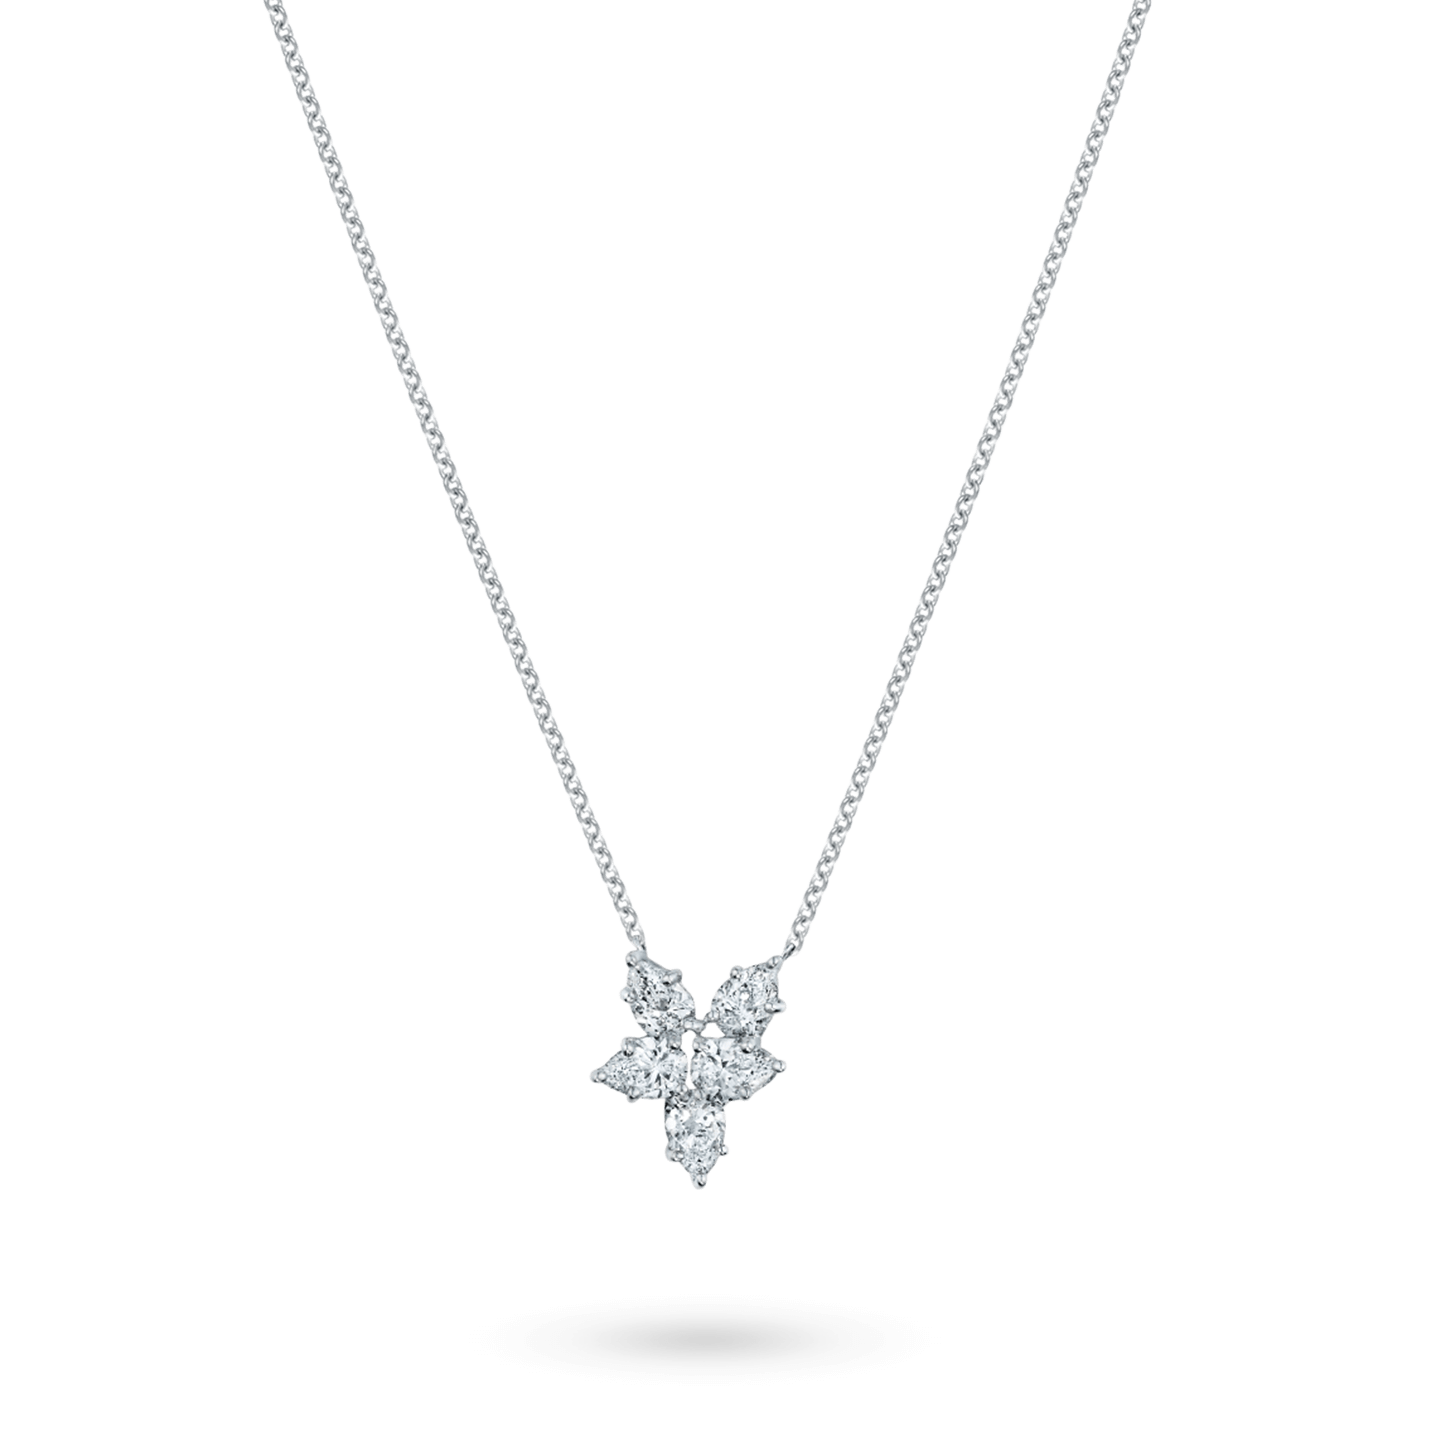 Winston Cluster Small Diamond Pendant, Product Image 2